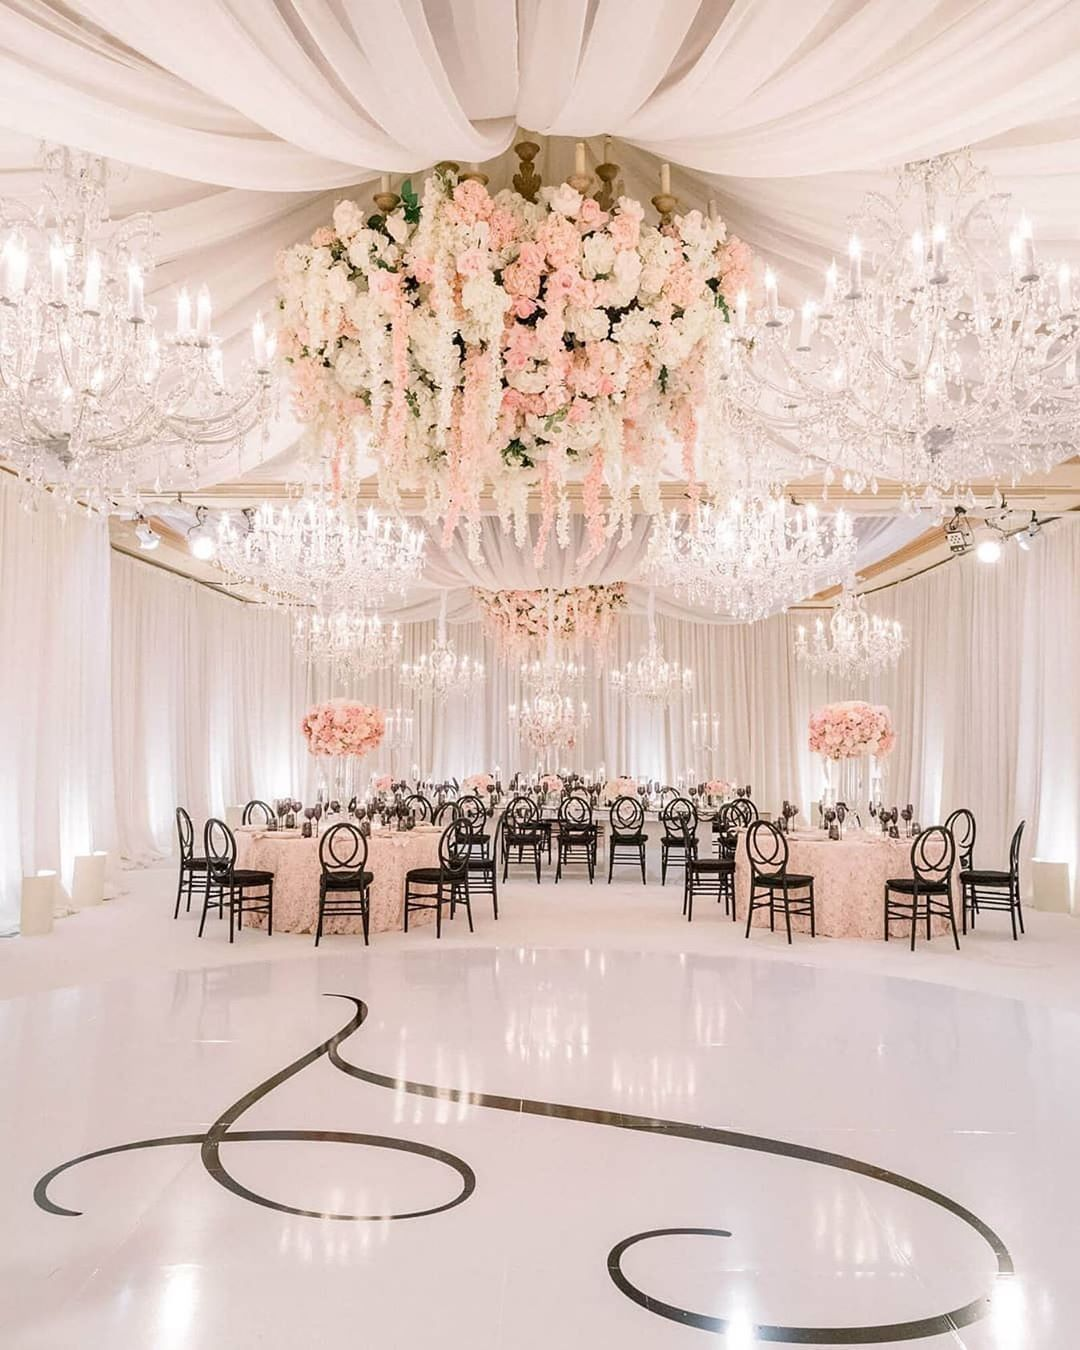 Magical Wedding Decor Who S Inspired Leave A Comment Below Design Planning Production Ag Luxury Wedding Decor Magical Wedding Wedding Decorations Luxury bridal room decoration